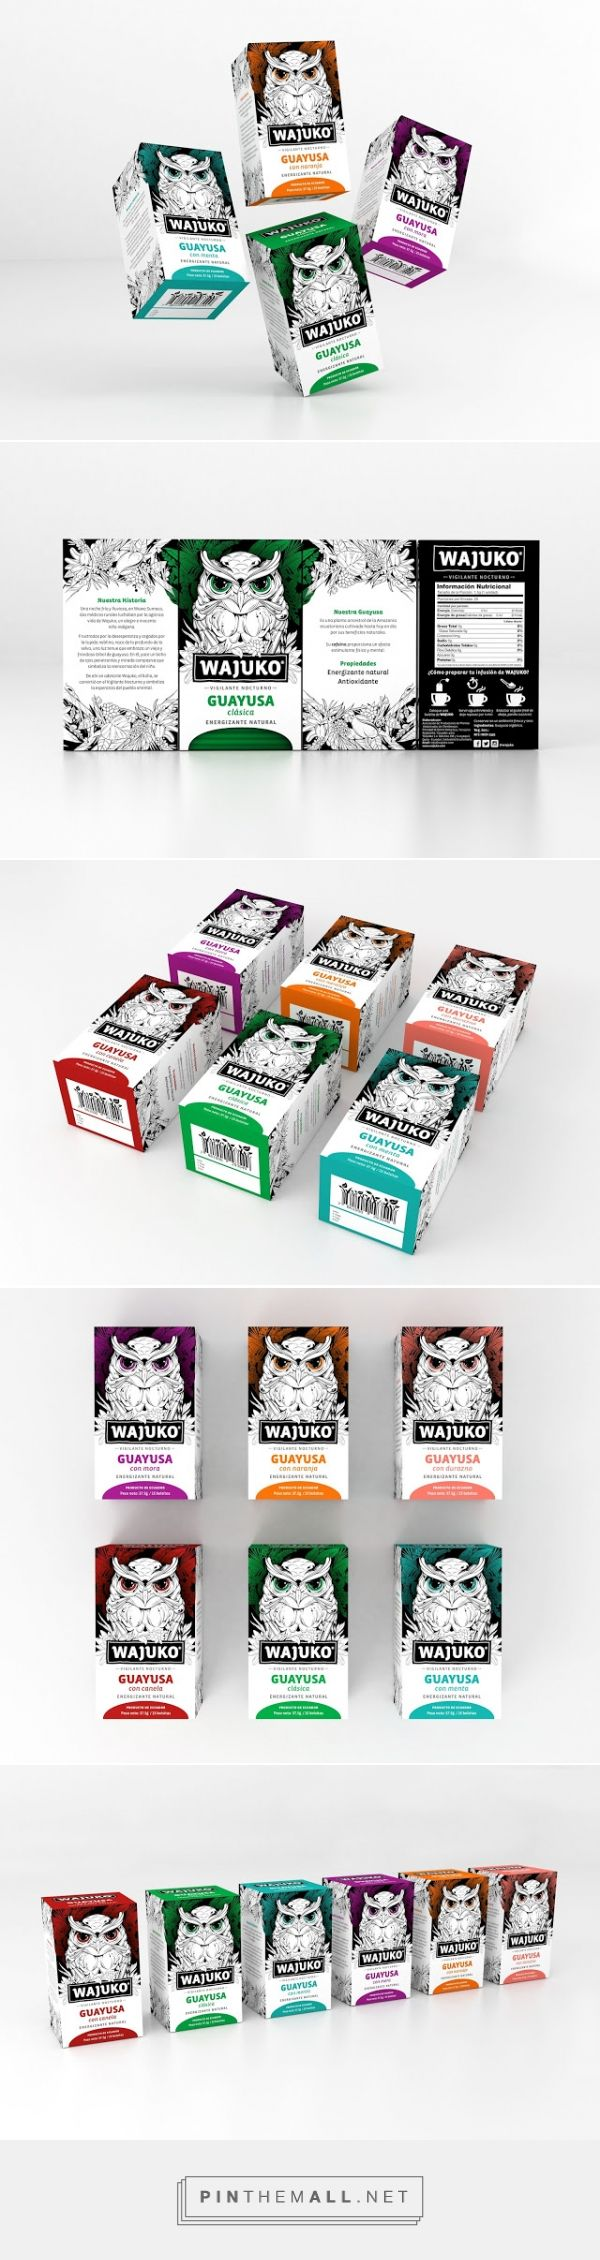 Wajuko | Guayusa Tea packaging designed by Gworkshop - http://www.packagingoftheworld.com/2015/09/wajuko-guayusa-tea.html